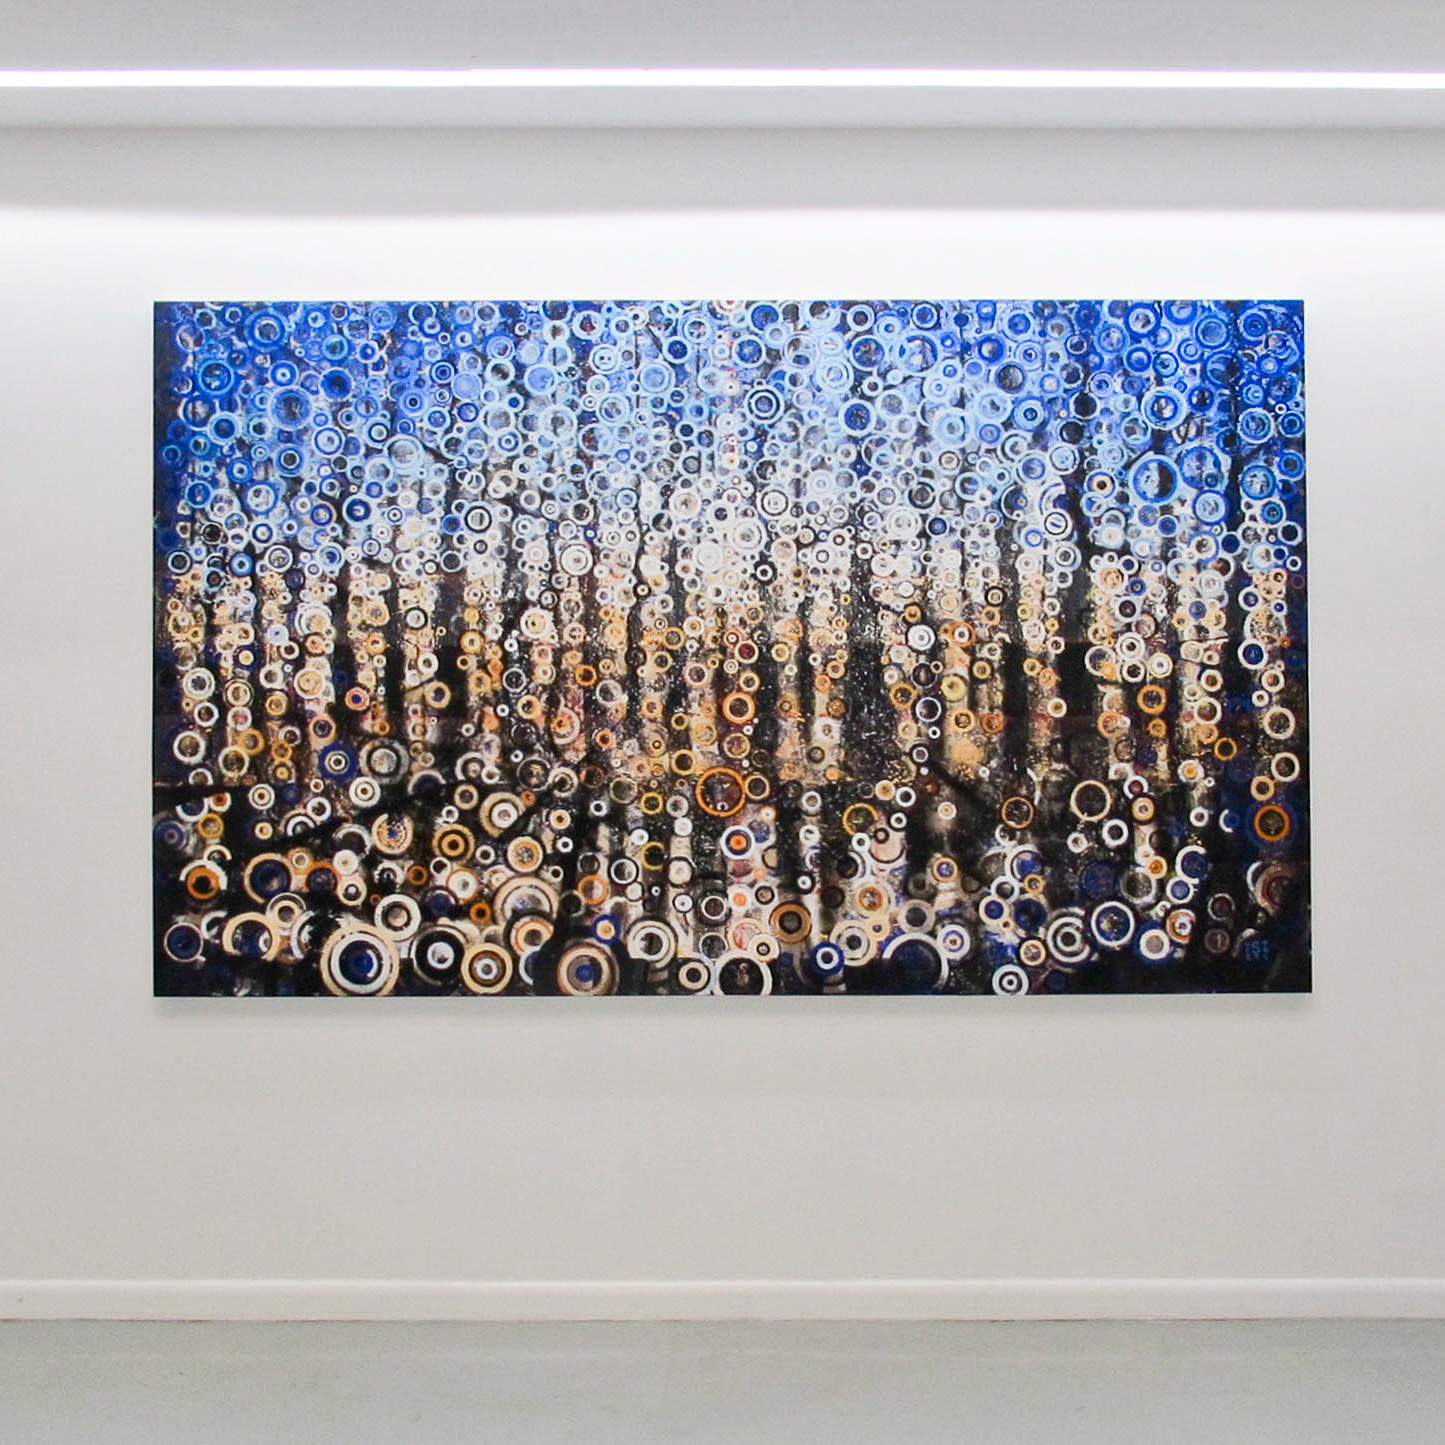 The painting 'Sightline' by Randall Stoltzfus hangs on gallery wall